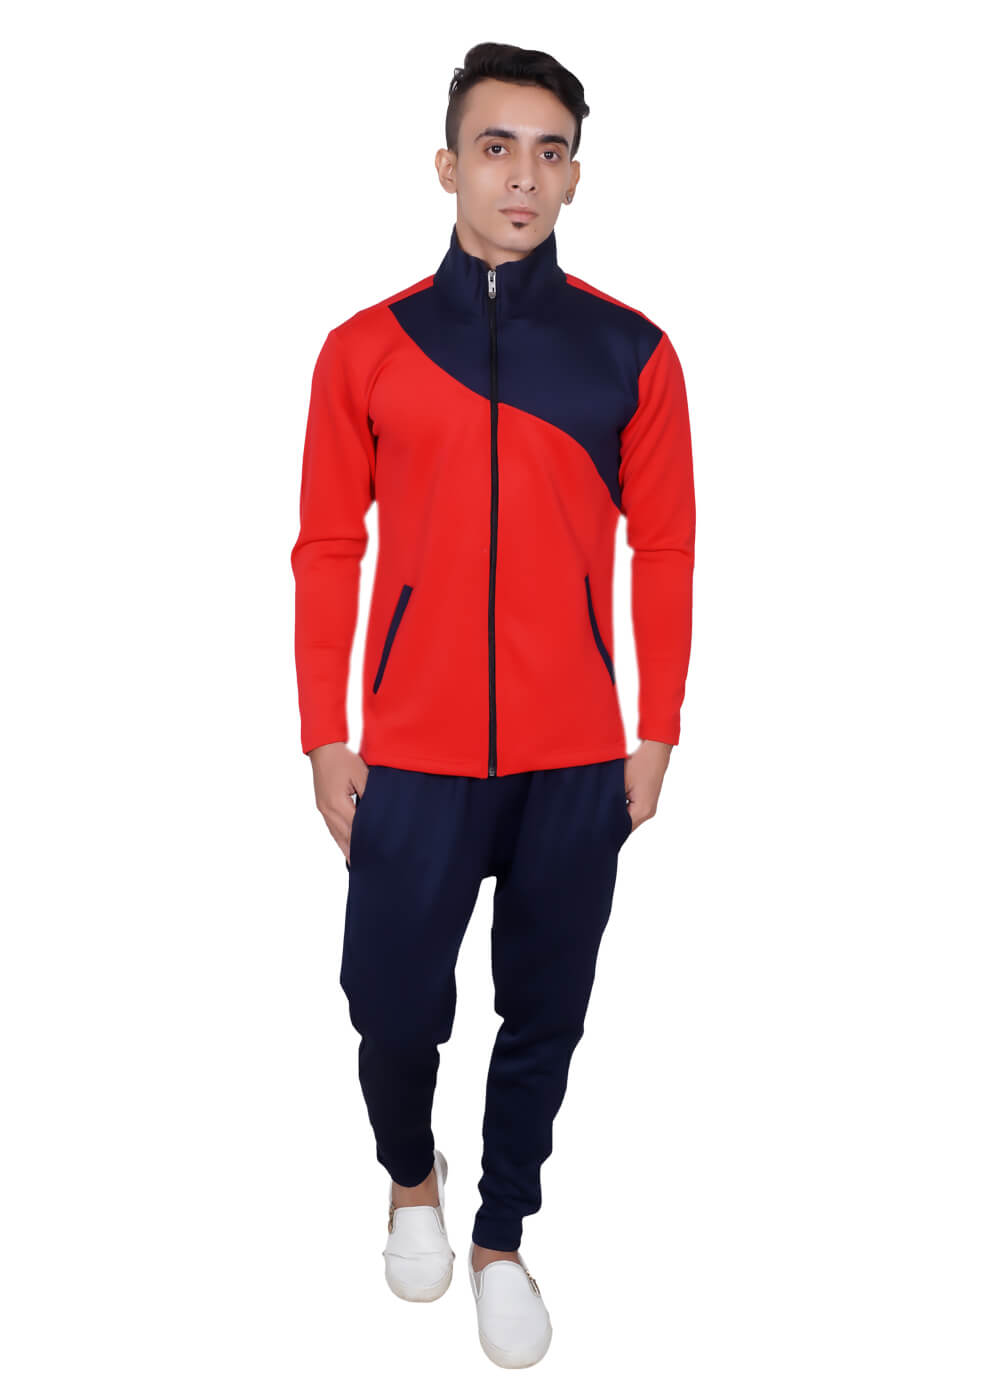 Cheap Tracksuits Manufacturers in Brazil